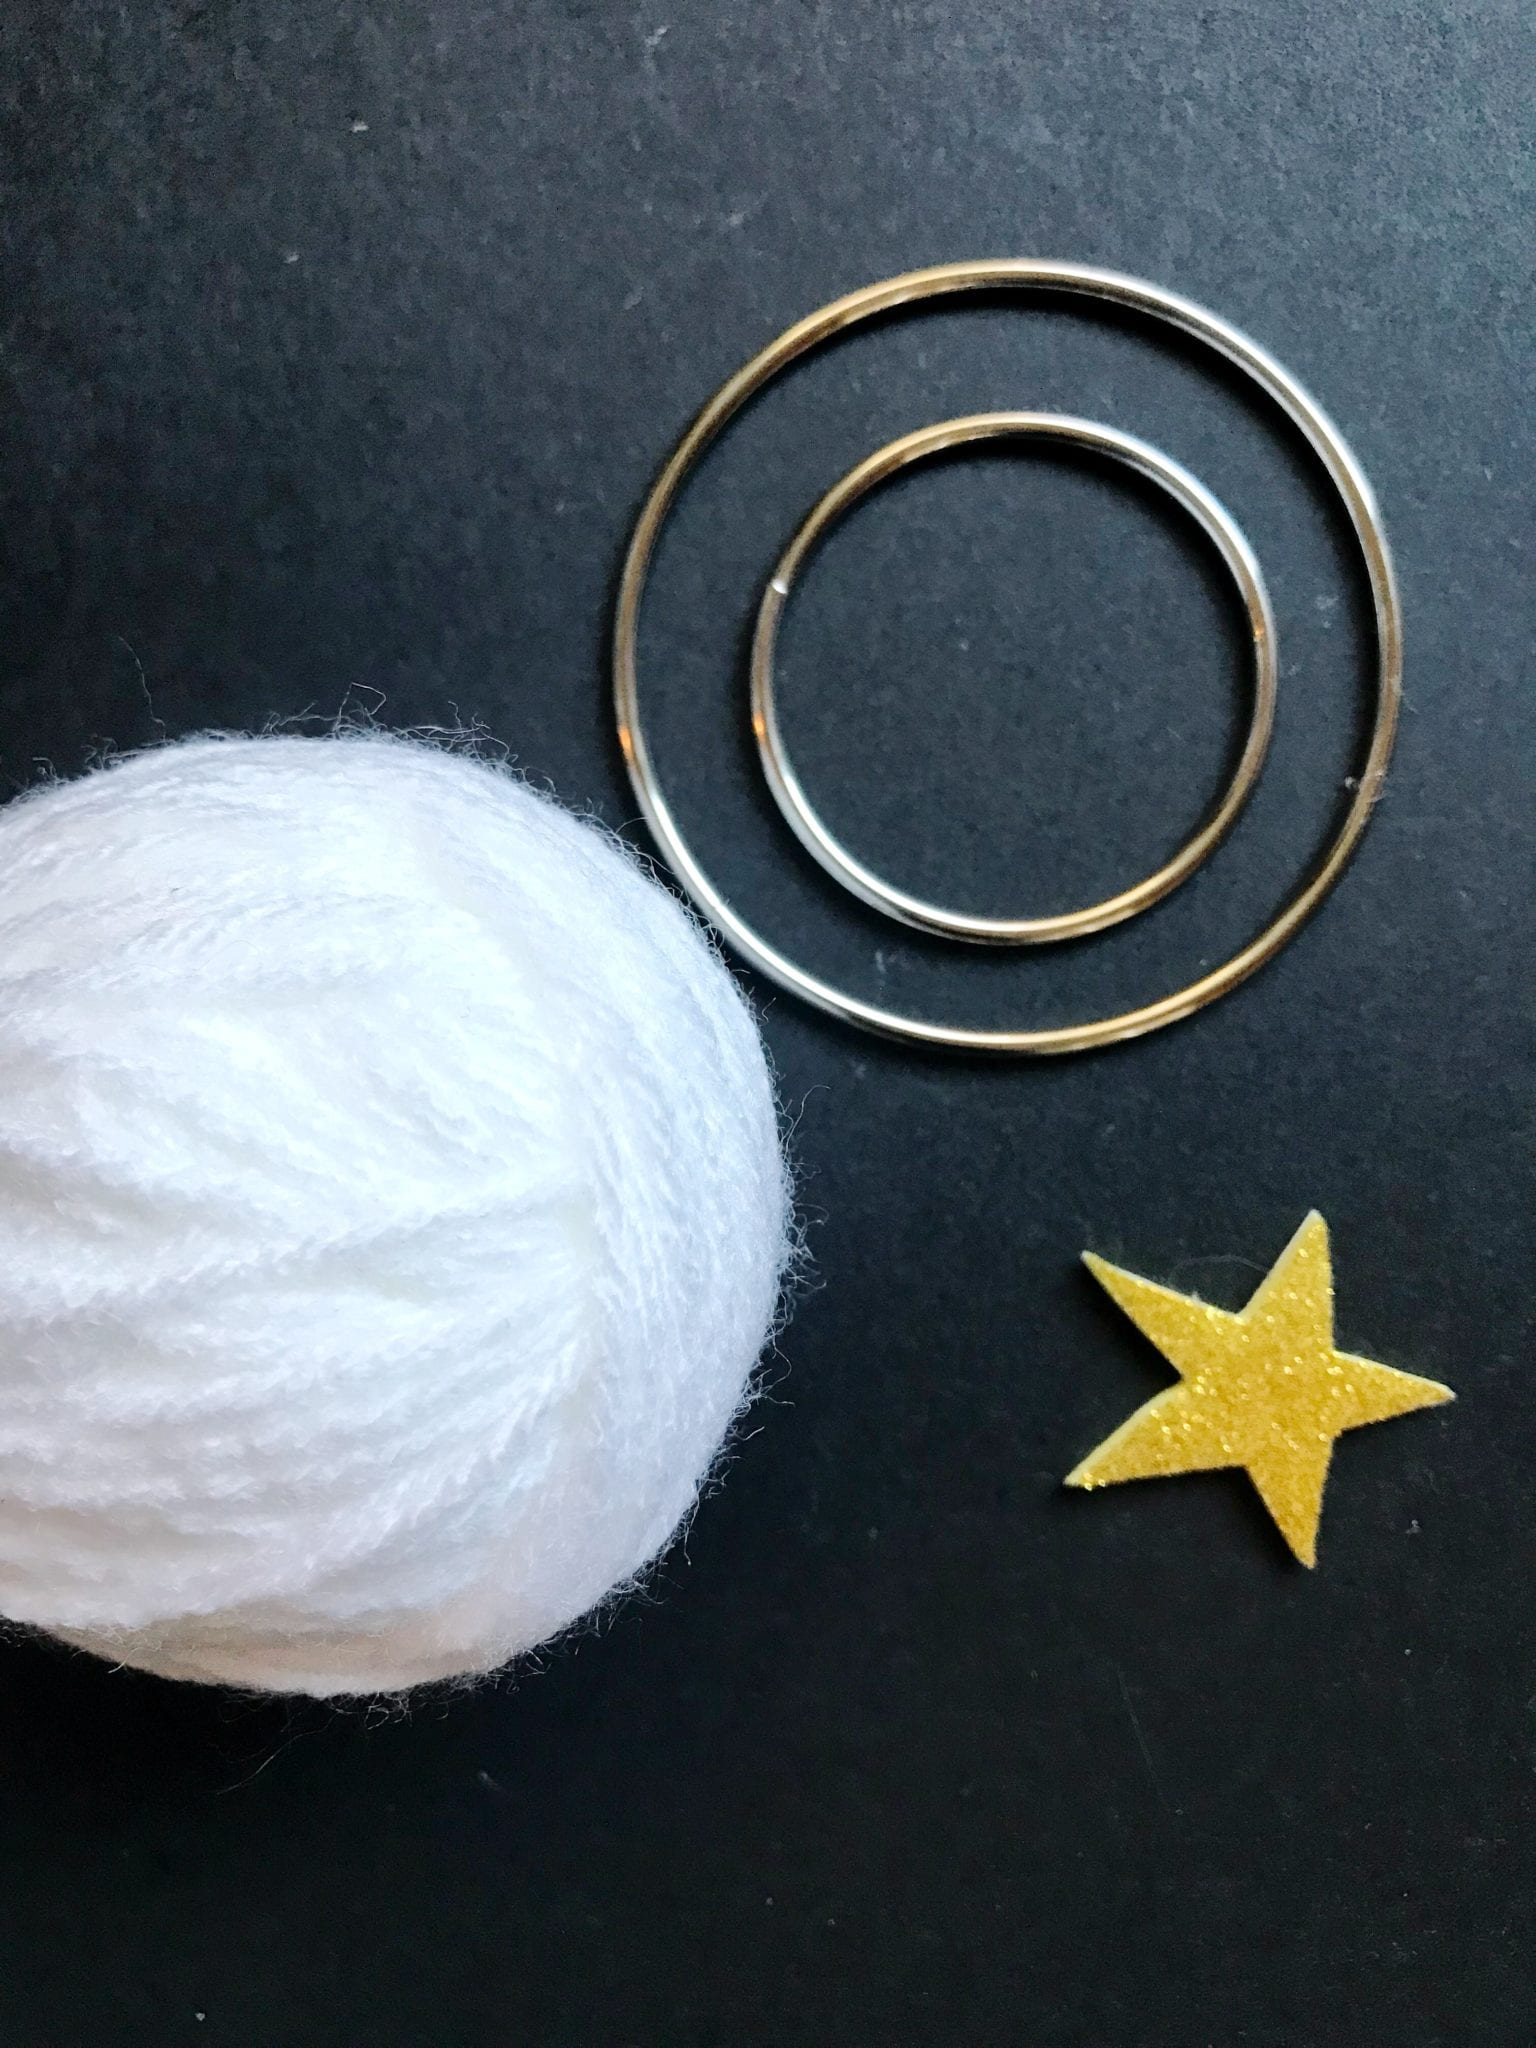 Supplies for a DIY moon ornament including yarn, star stickers and metal rings.